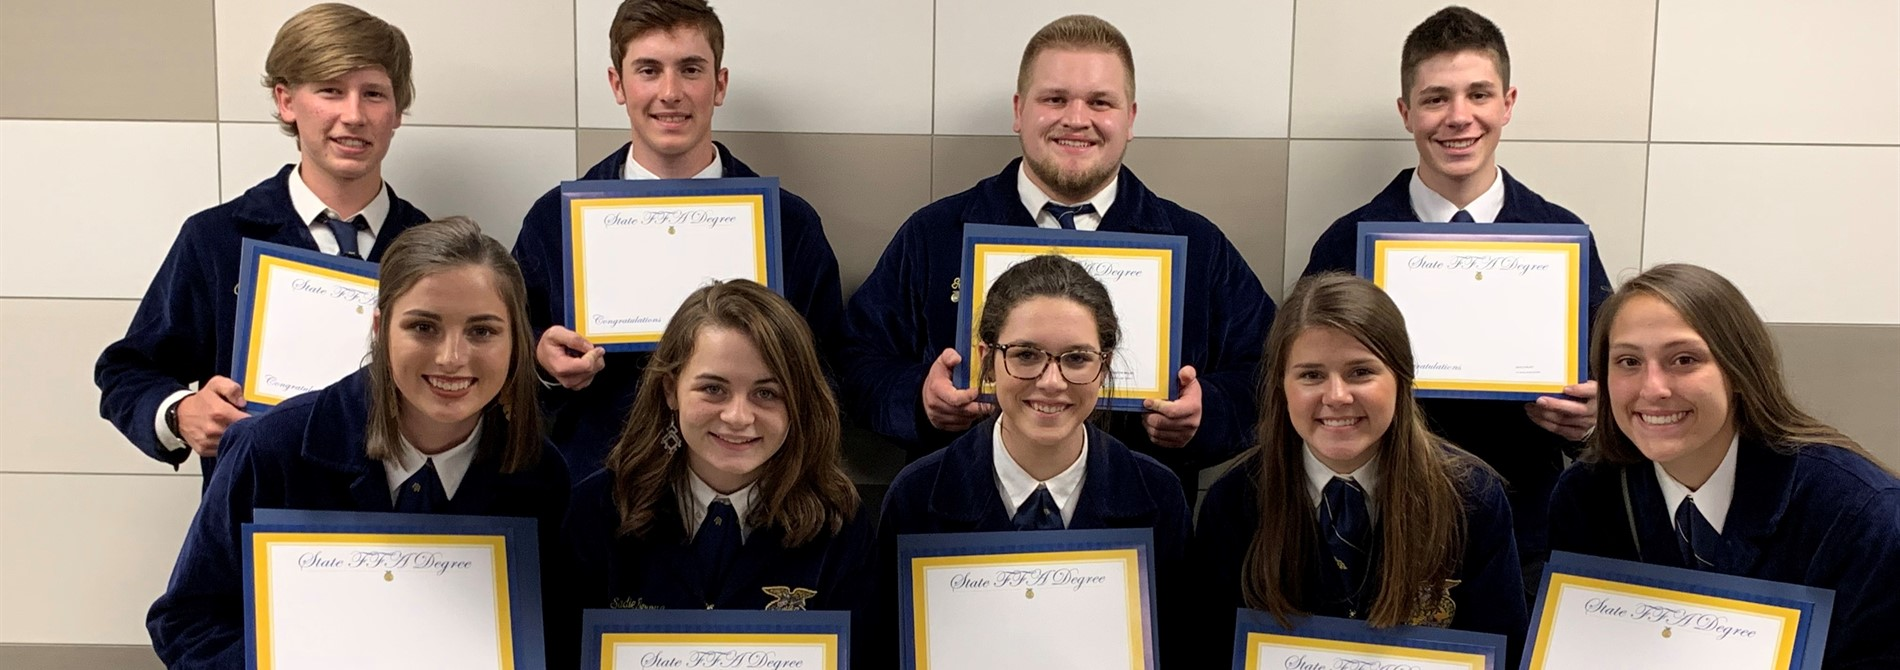 At the annual Ohio State FFA Convention several Tri-Valley members received their State Degrees!